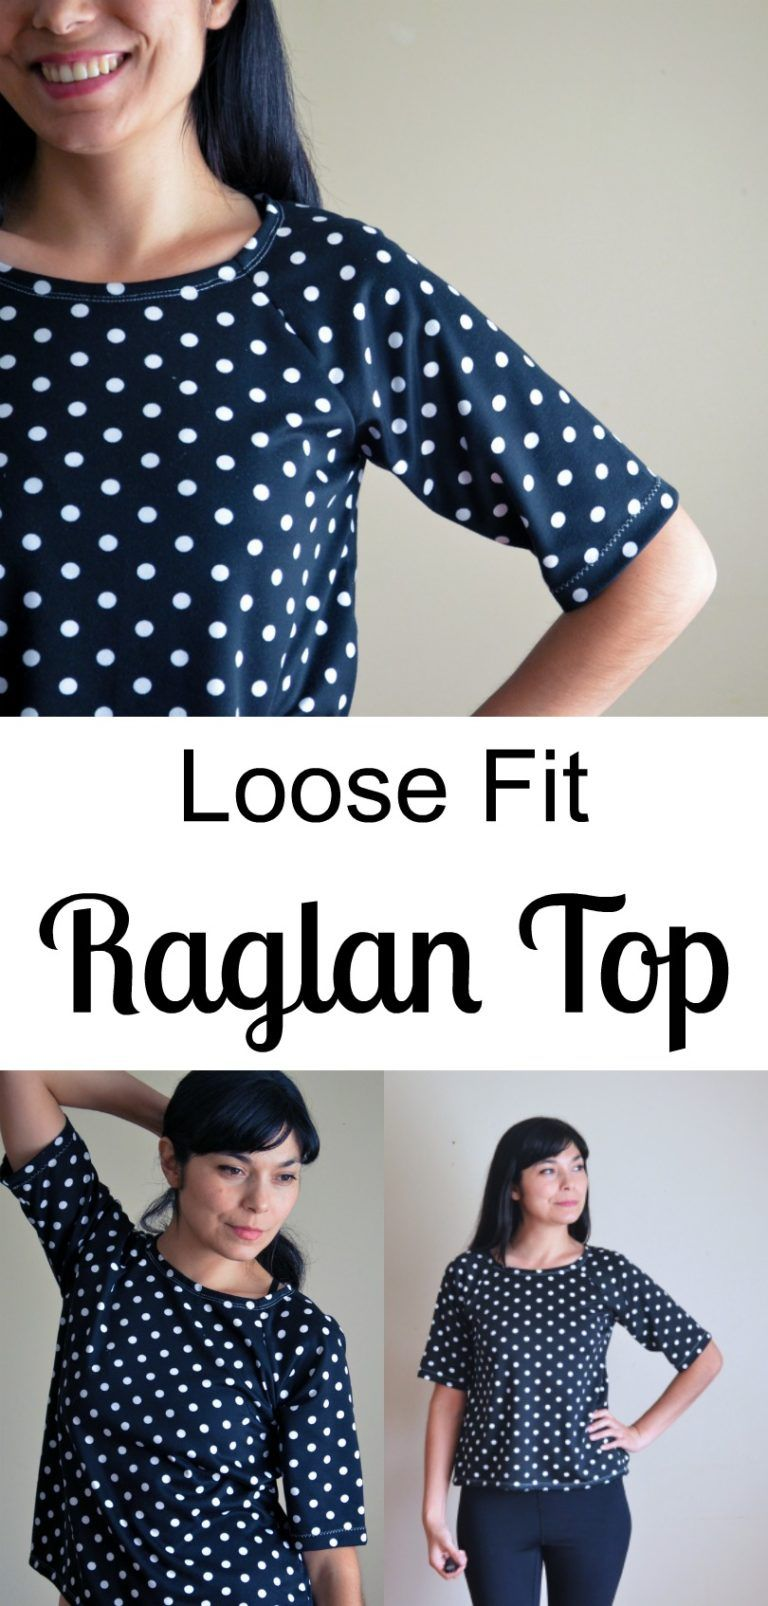 8747498a9c3 Simple Loose fit Raglan Top Sewing Tutorial with a free size 4 pattern to  download!